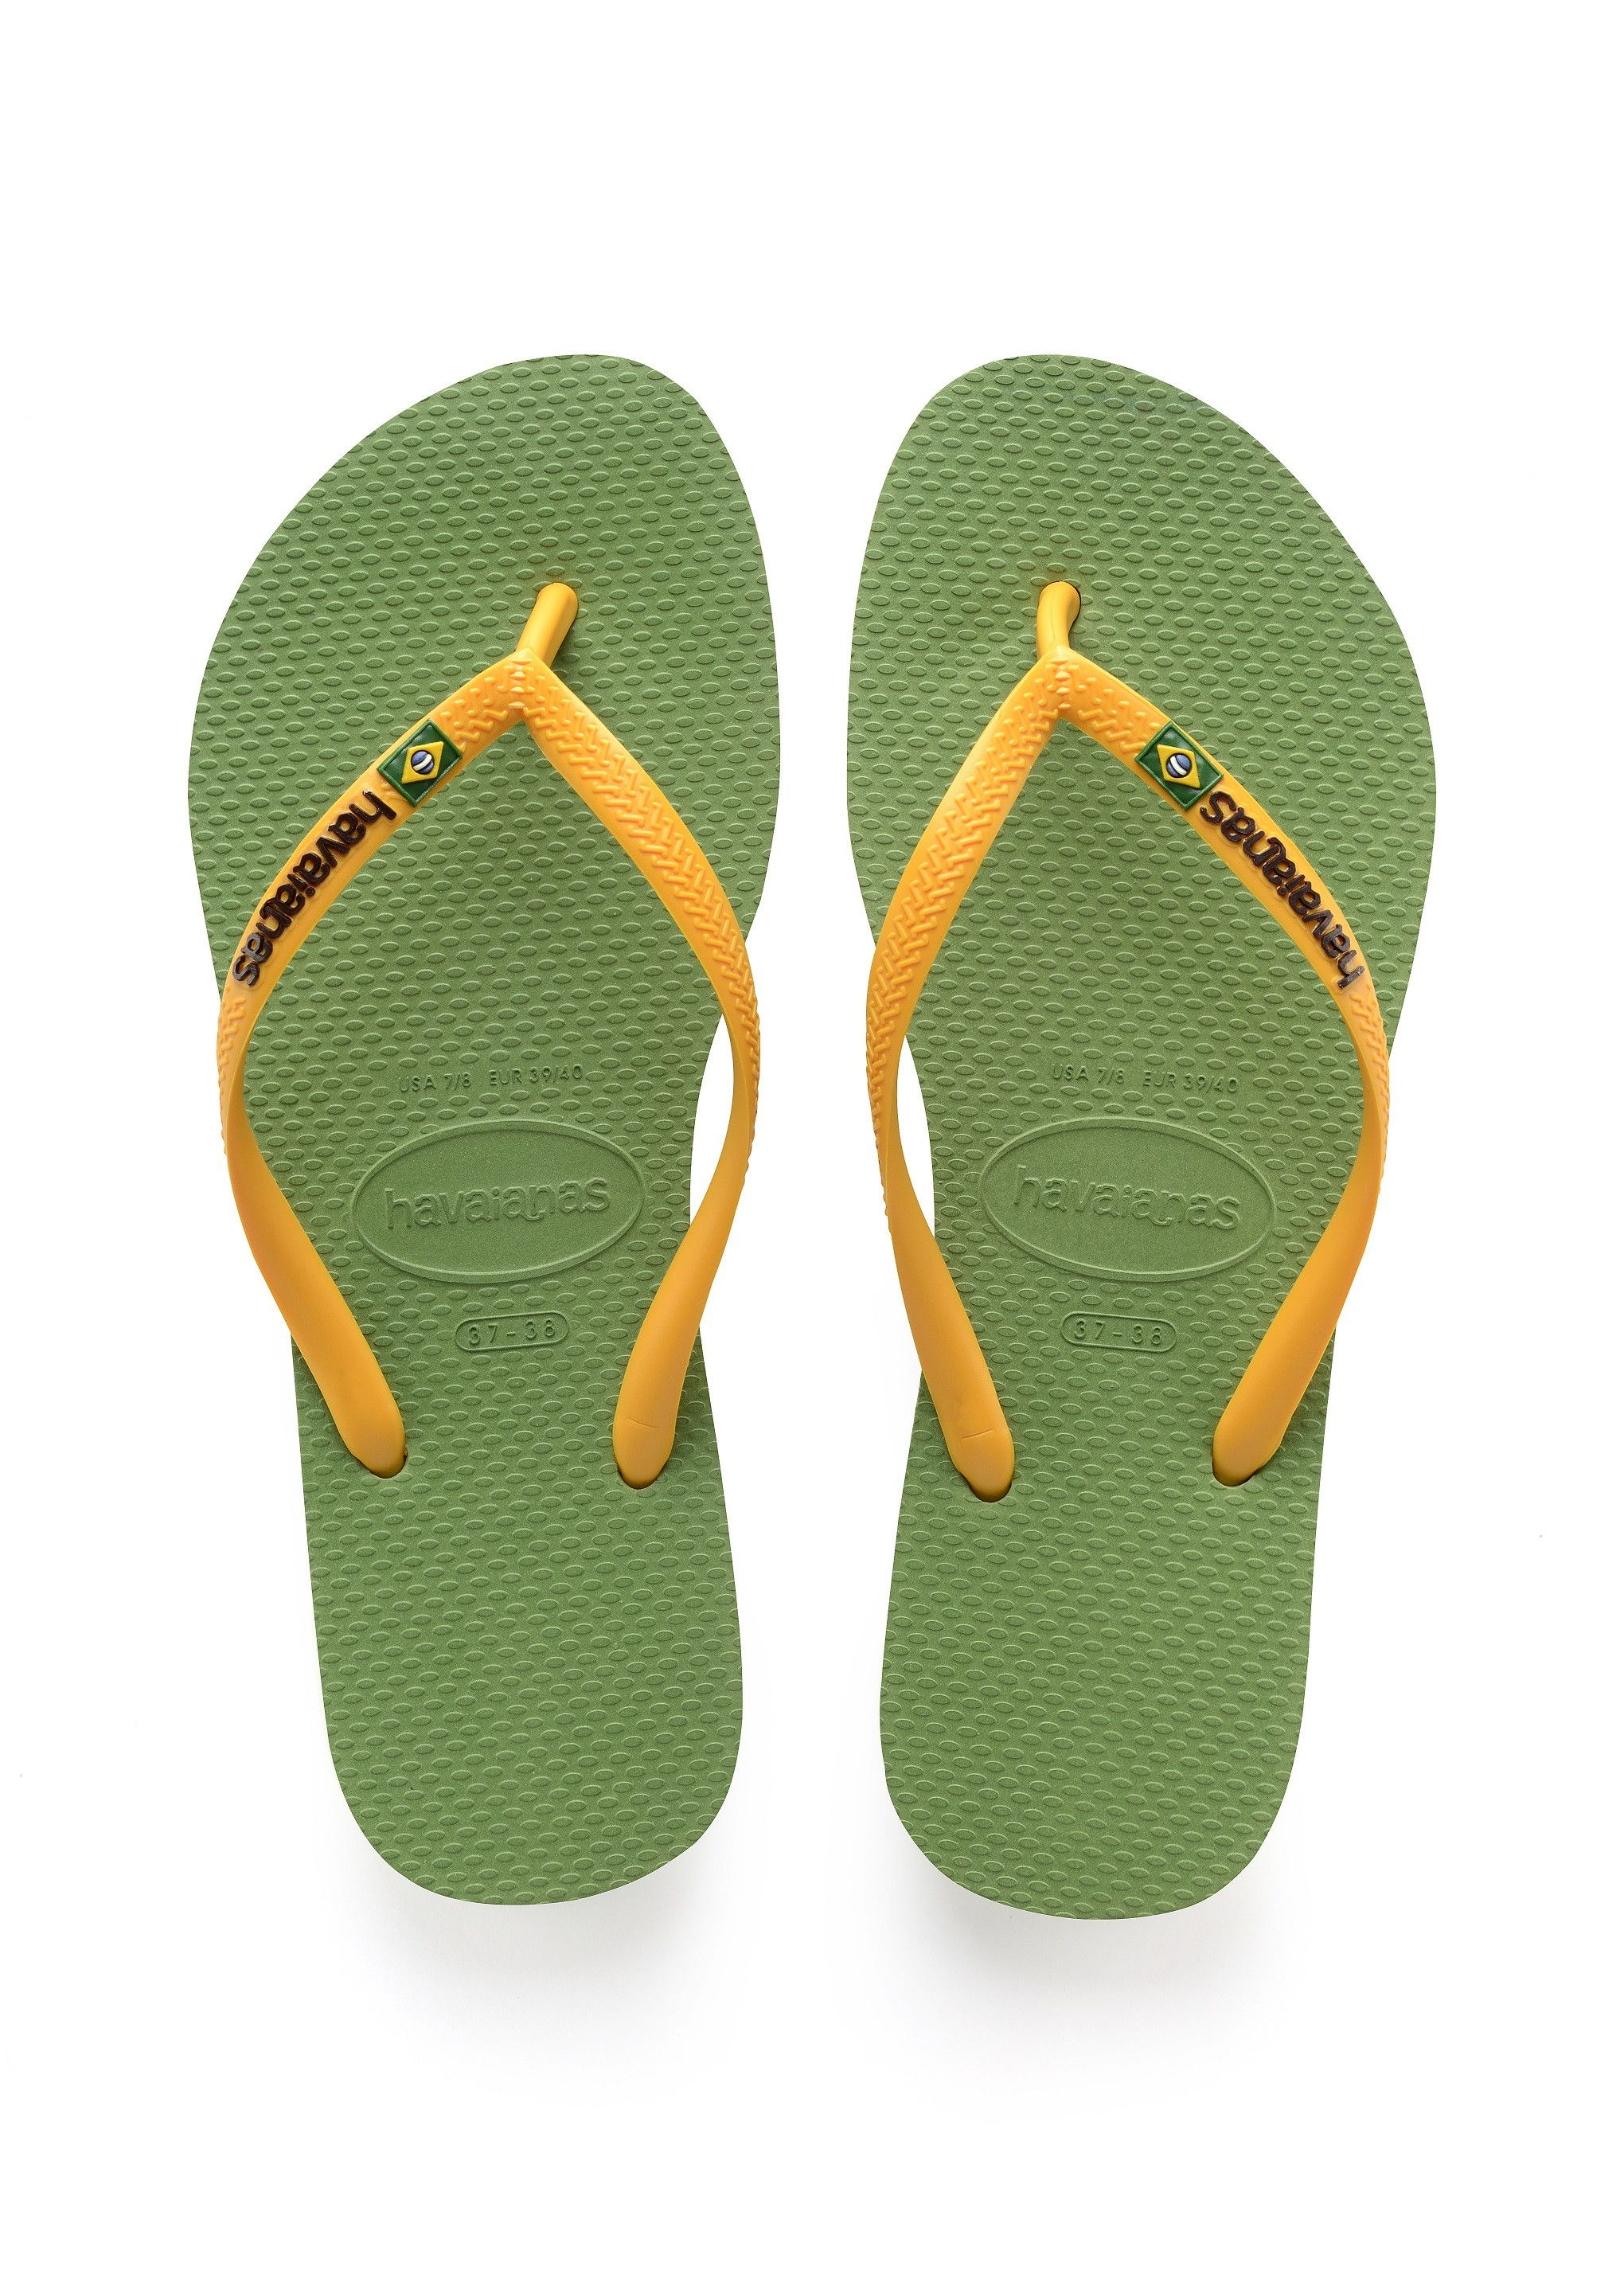 613d5e7a772db Havaianas Slim Brazil Sandal Green Bamboo Price From  35